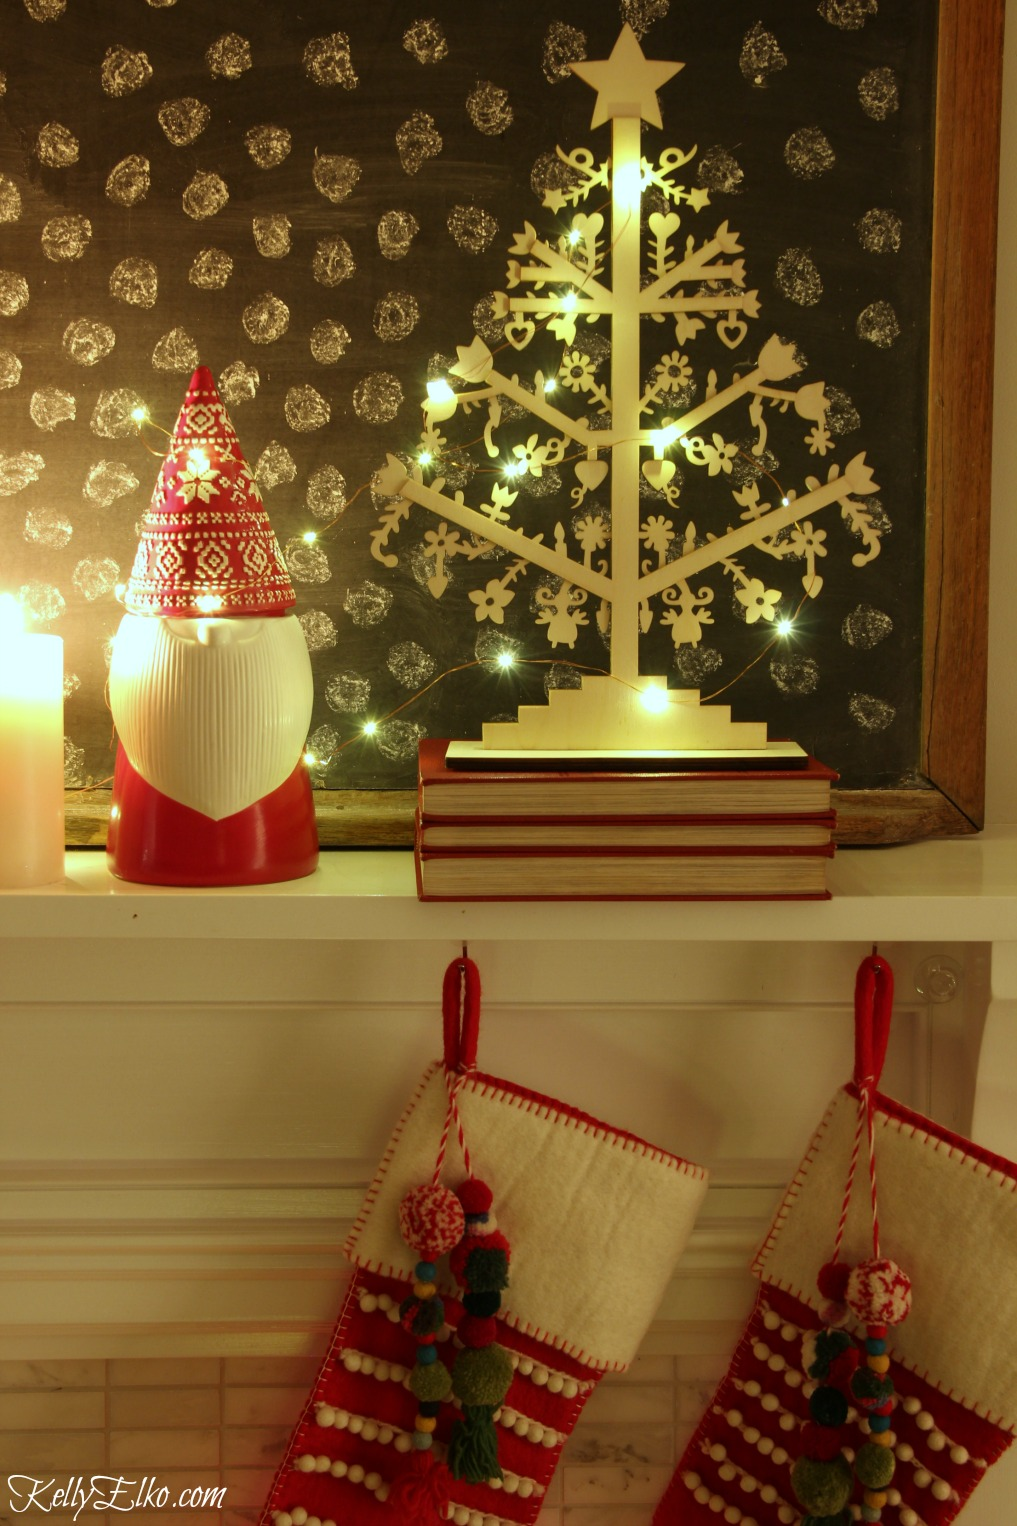 Christmas Nights Tour - see 25 of the best Christmas homes lit up at night! Love this cute little gnome and pom pom stockings kellyelko.com #christmas #christmasdecorating #christmasdecor #christmaslights